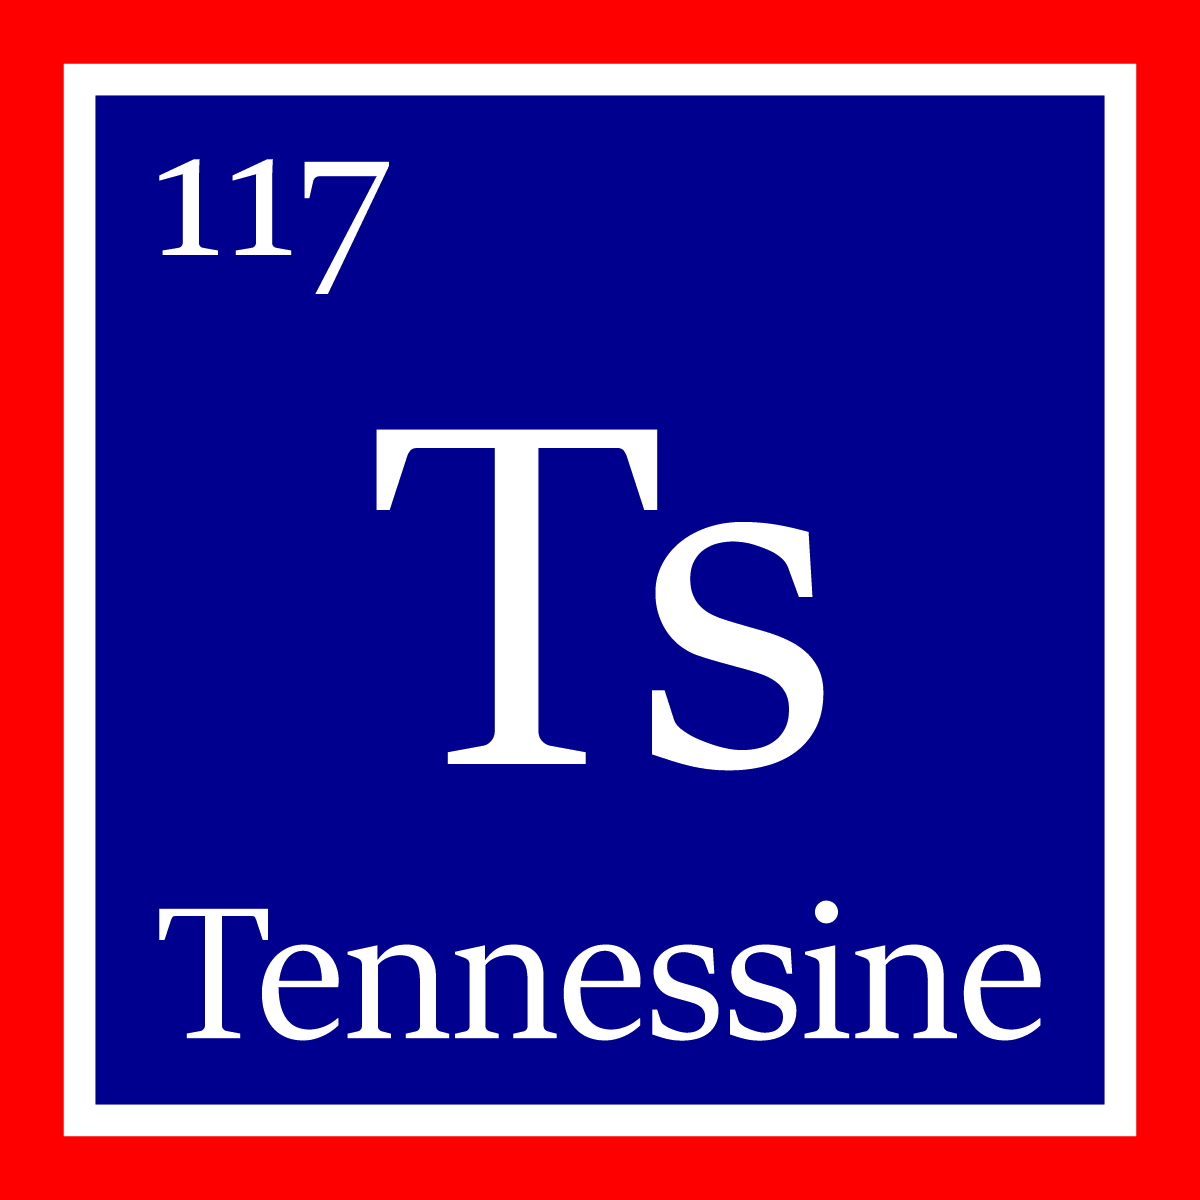 Tennessine element 117 officially named the new element tennessine is denoted by the symbol ts on the periodic table credit ornl gamestrikefo Gallery